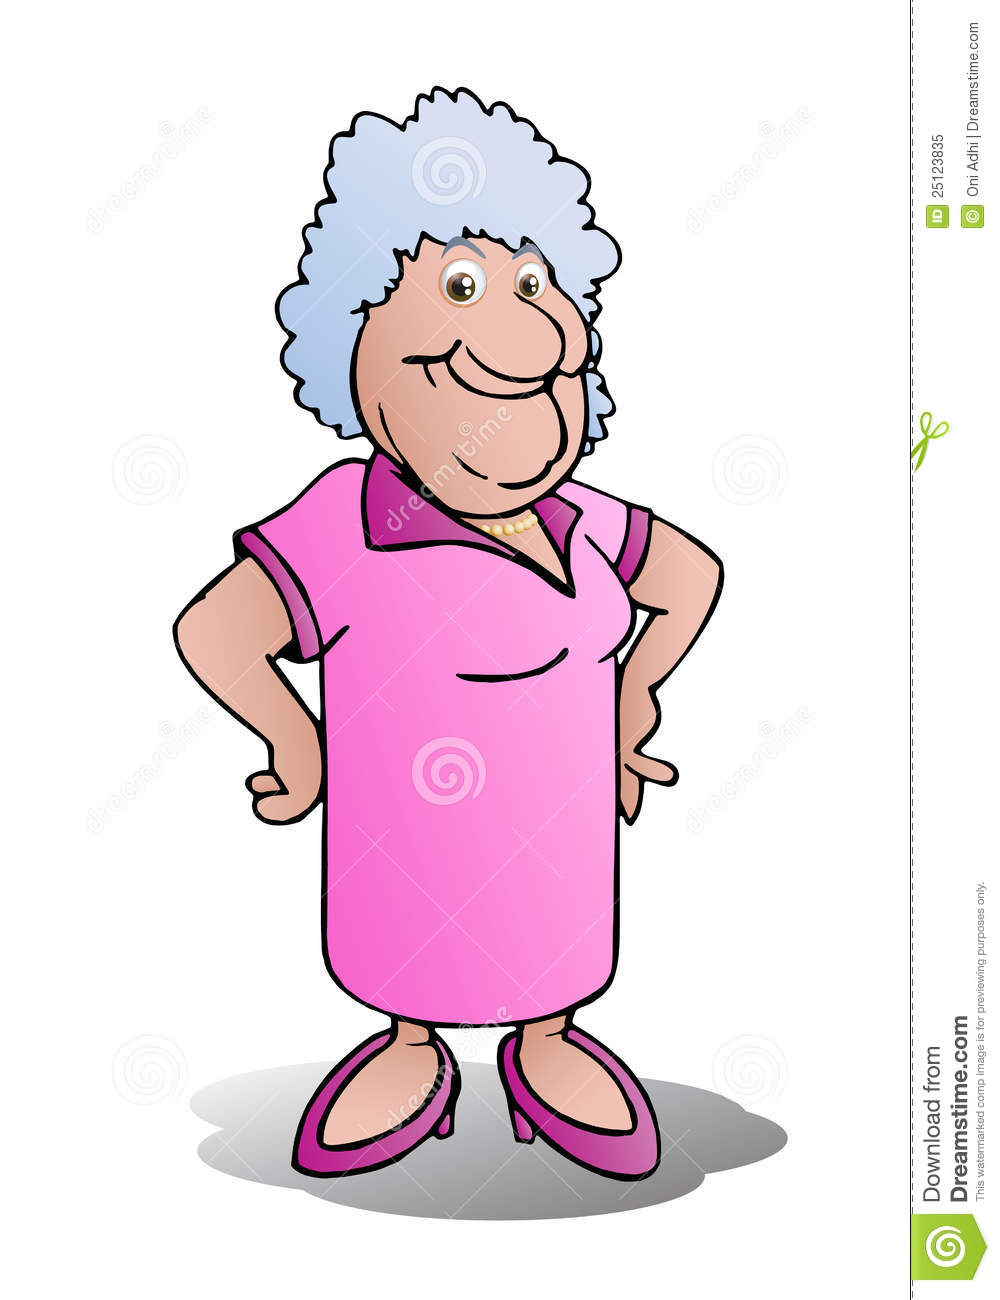 Grandmother clipart - Clipground